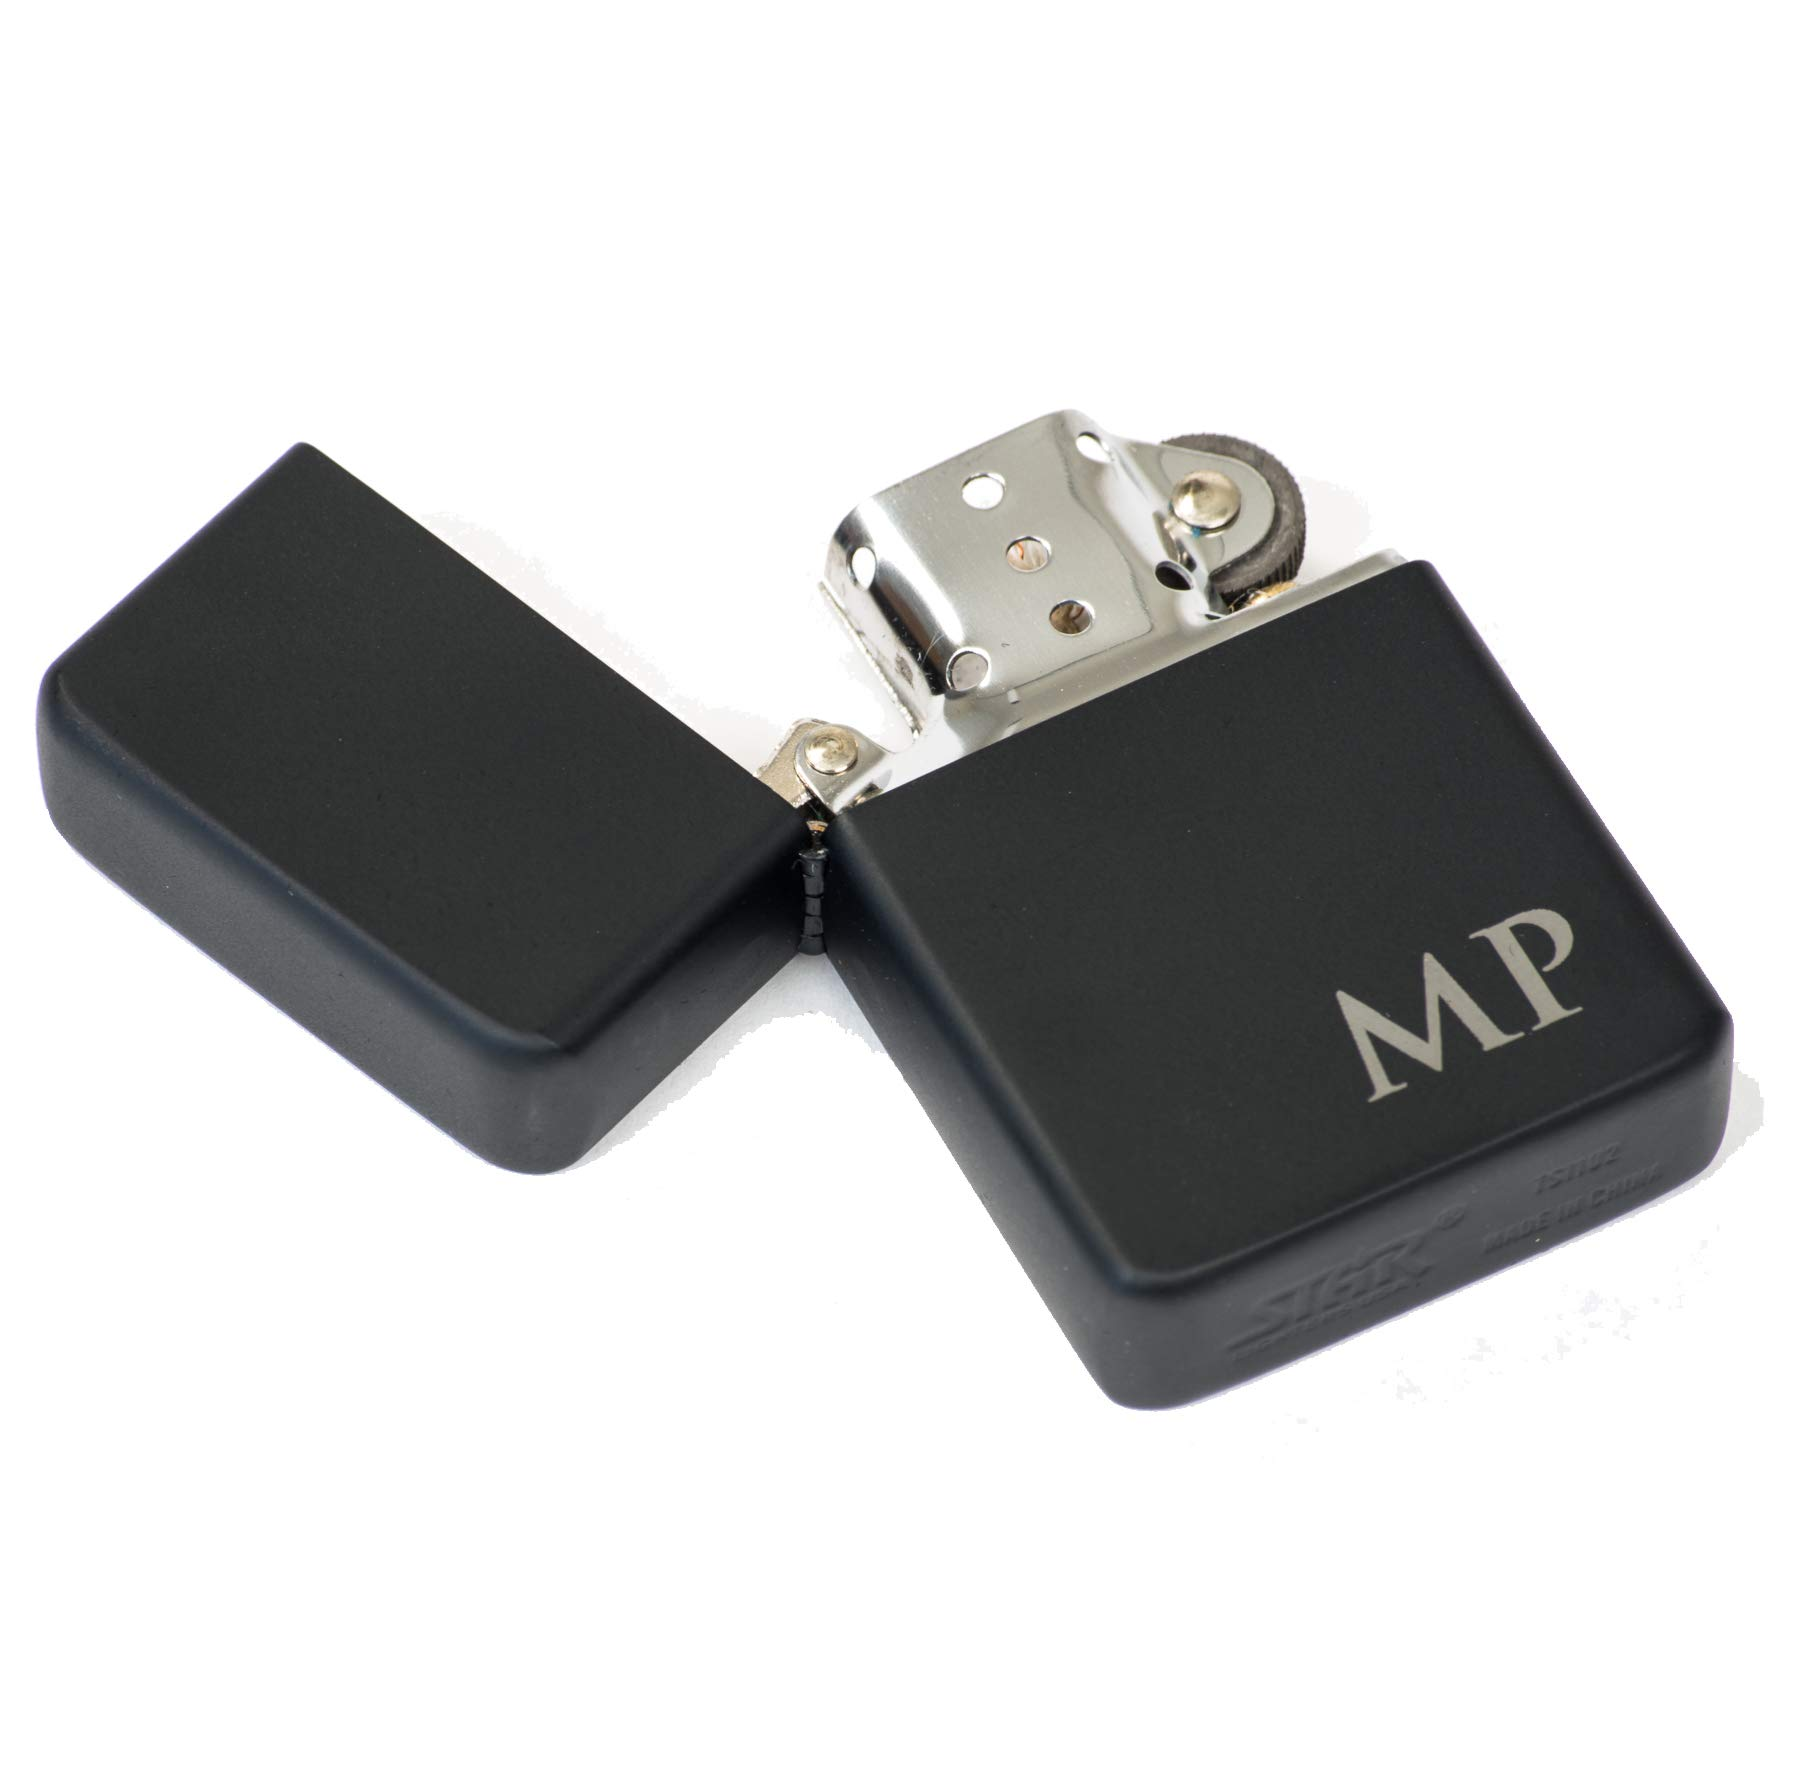 Gift for Him - Personalized/Custom Engraved - Refillable Matte Black Flip Top Lighter, Includes Gift Box Tin - Perfect Smoker's Gift